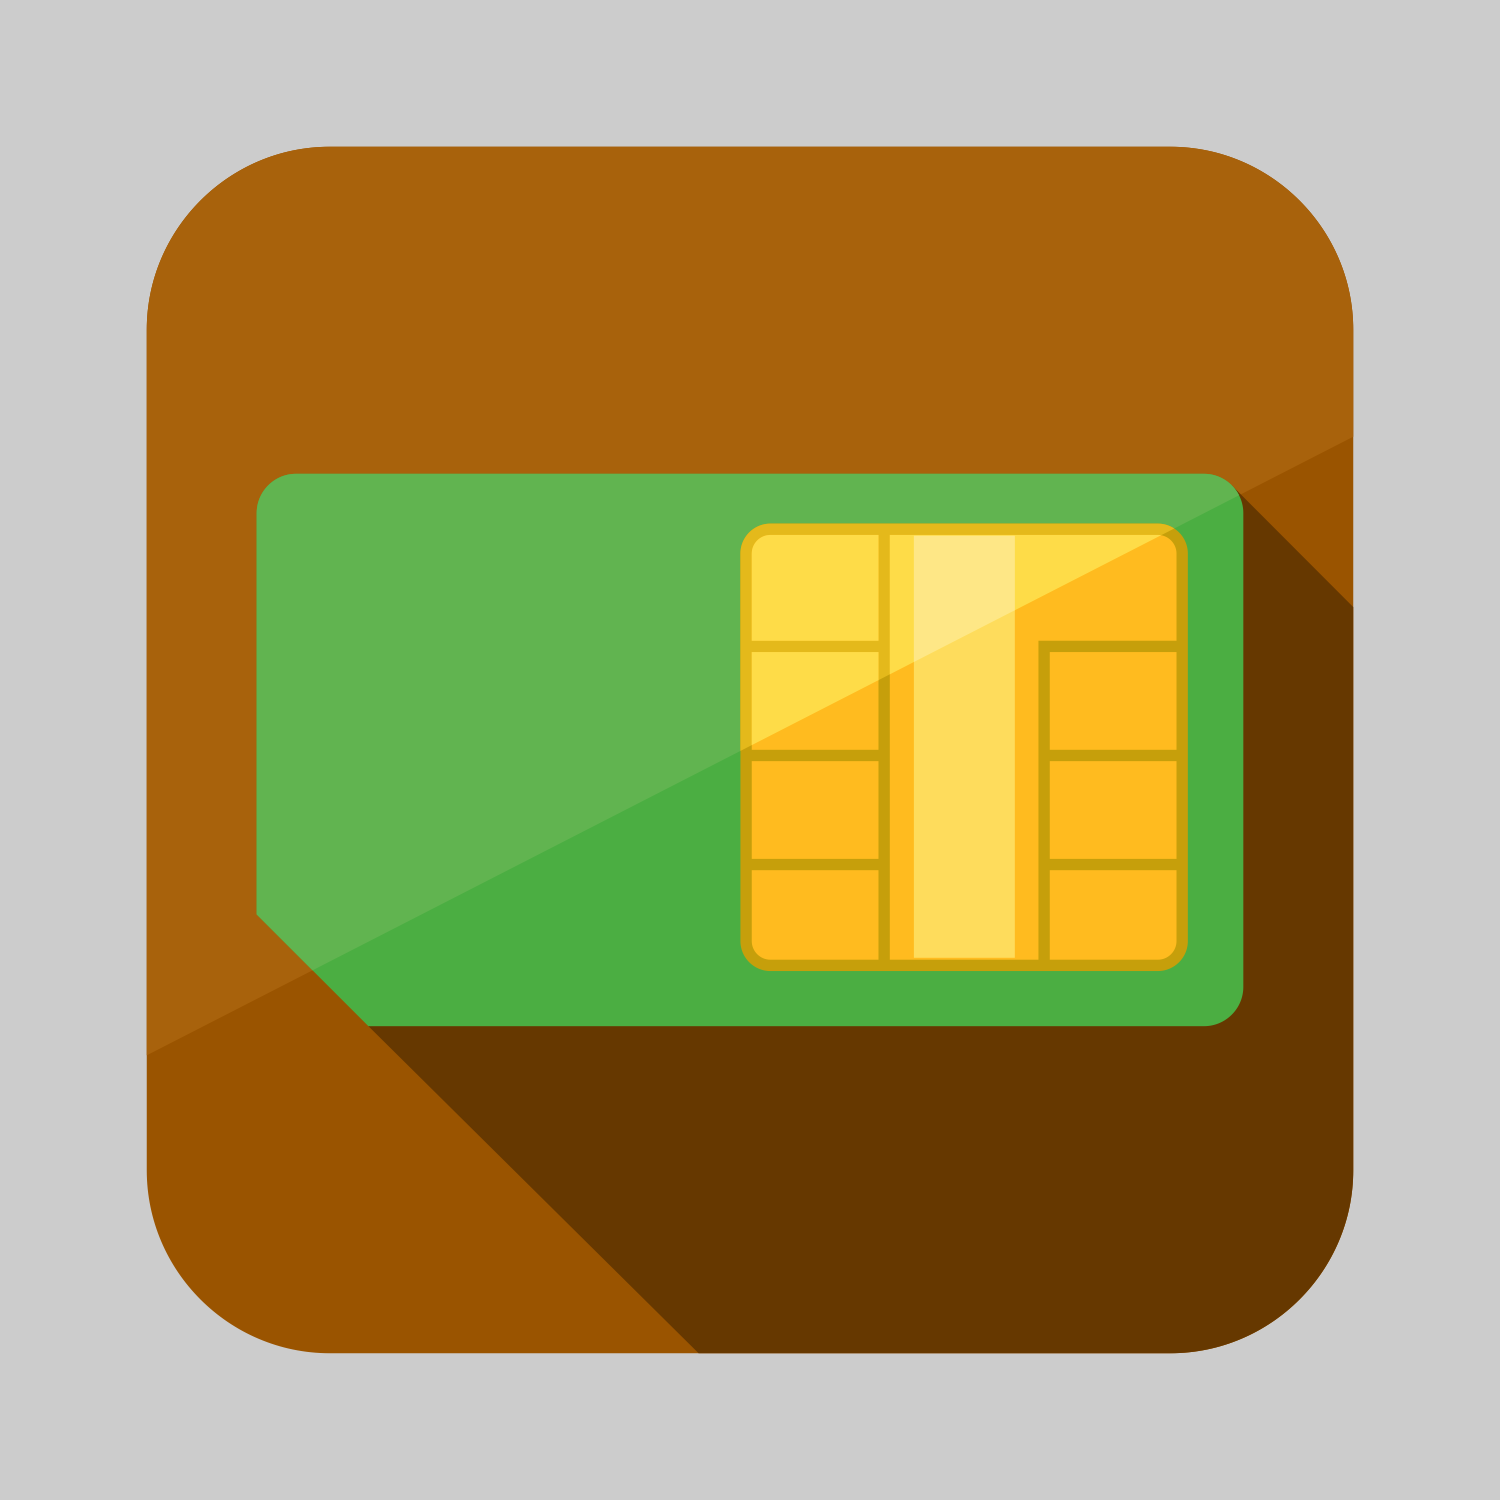 SIM card icon or button